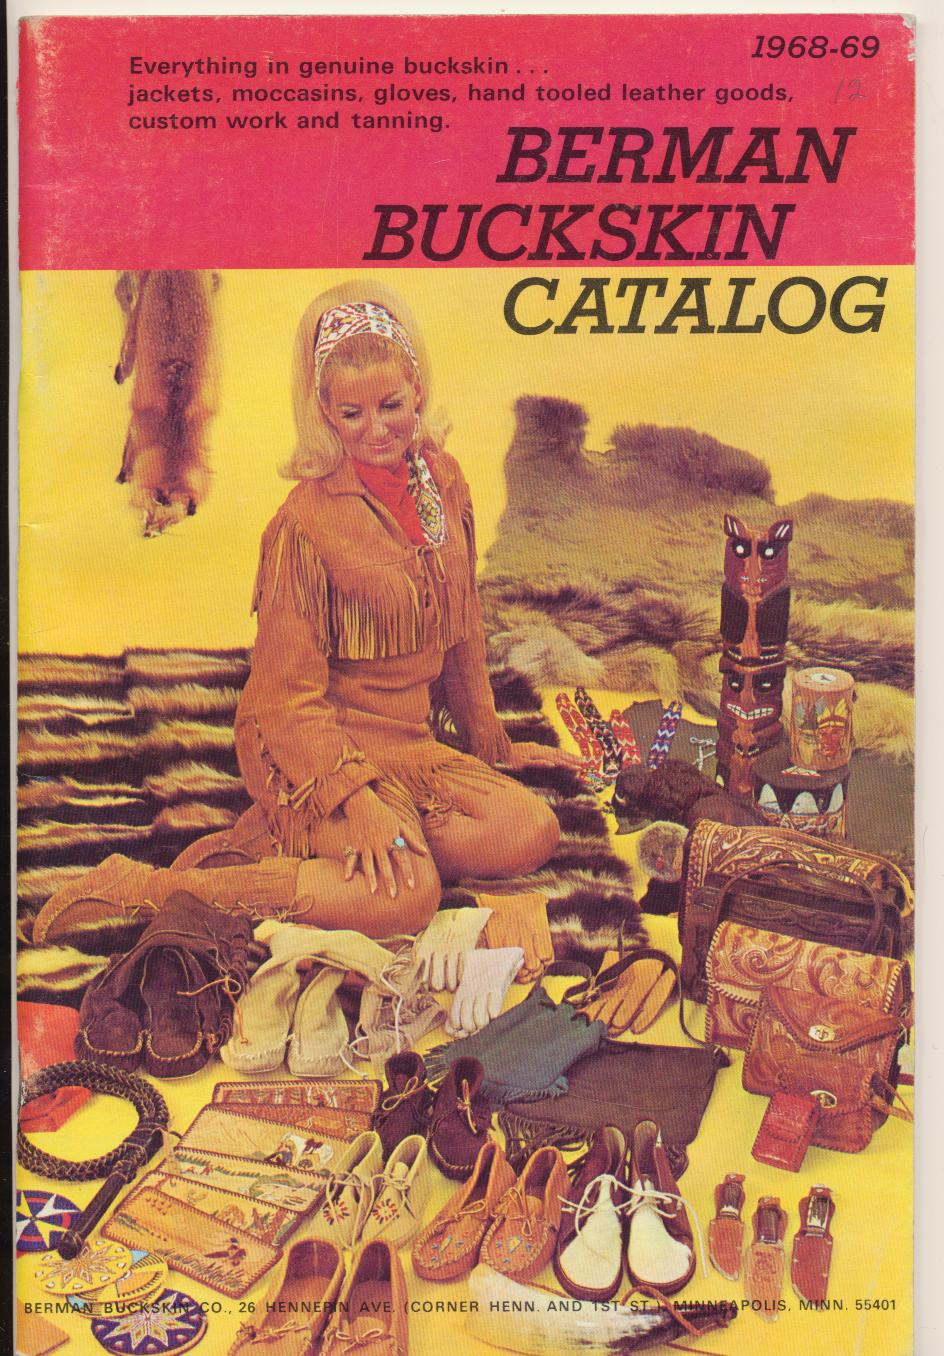 1968 Berman Buckskin Clothing & Leather Goods Catalog